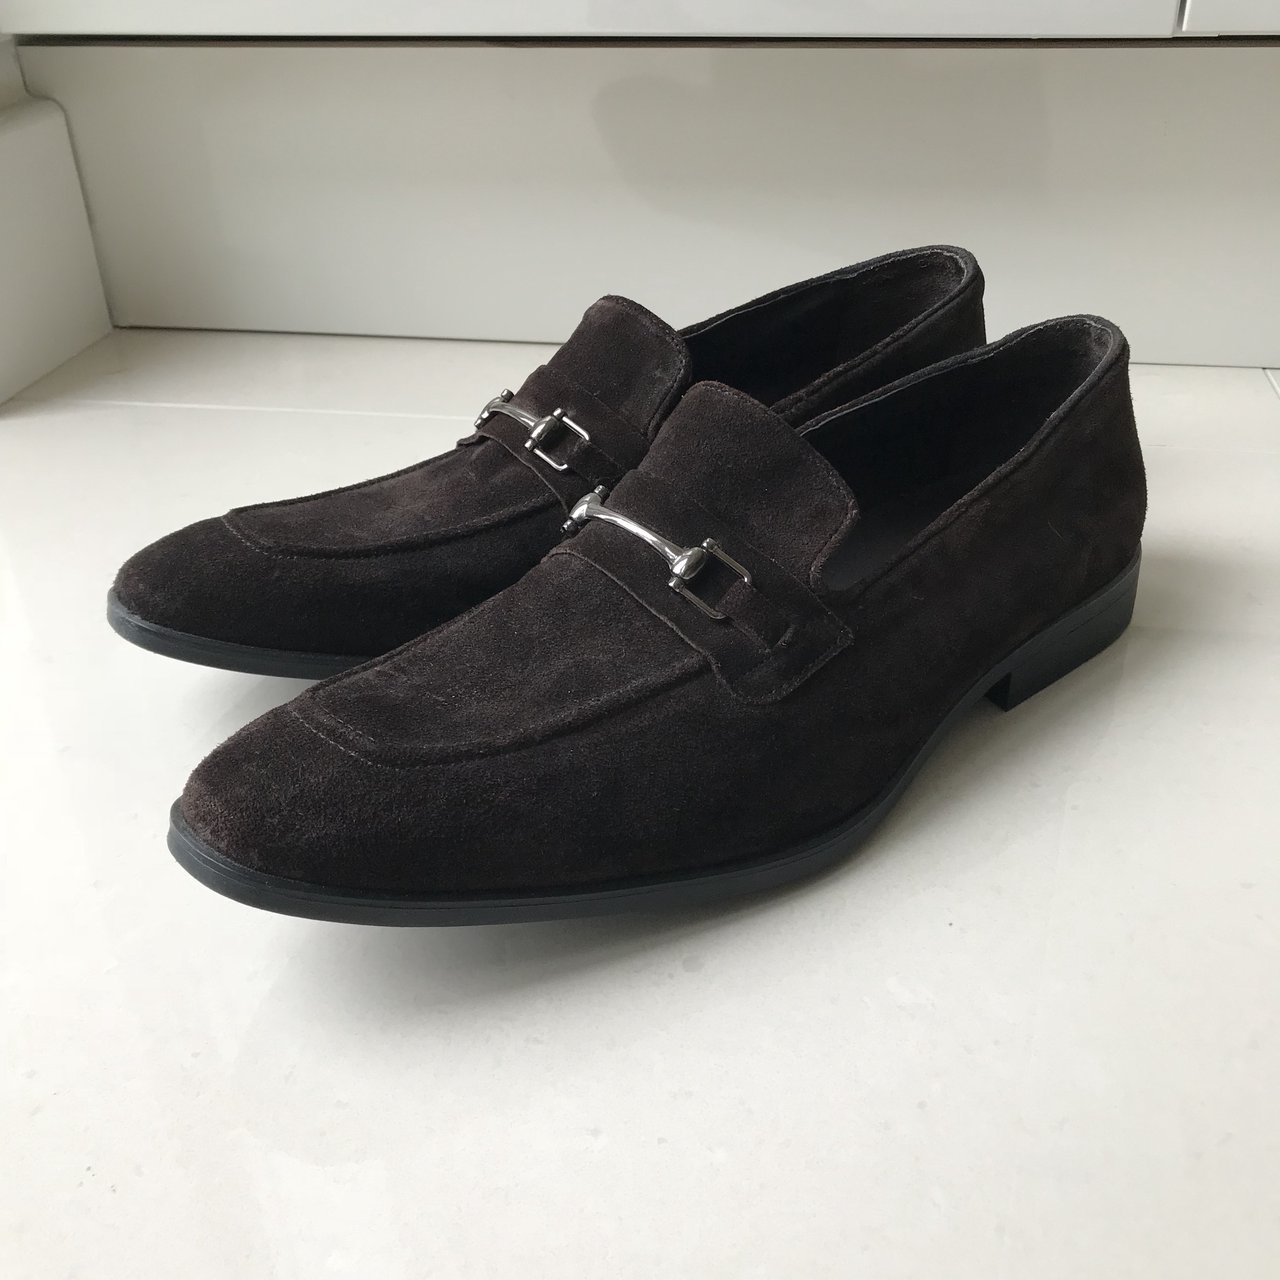 001c35c6c9c Dark brown suede loafers with silver buckle detailing. Been - Depop